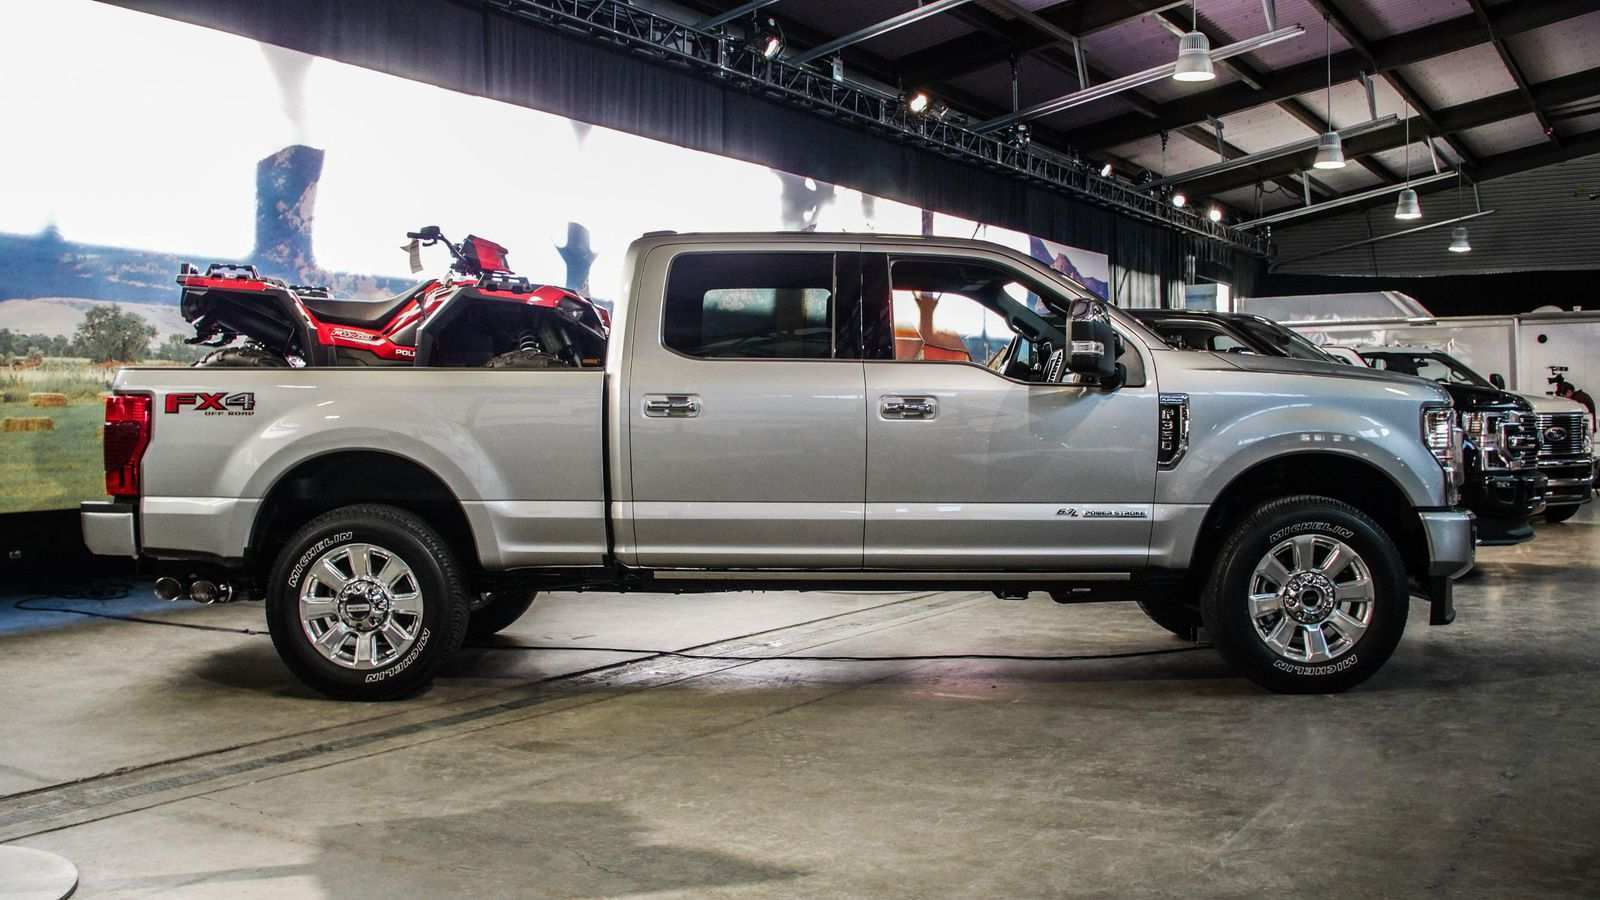 40 A 2020 Ford F350 Super Duty Picture